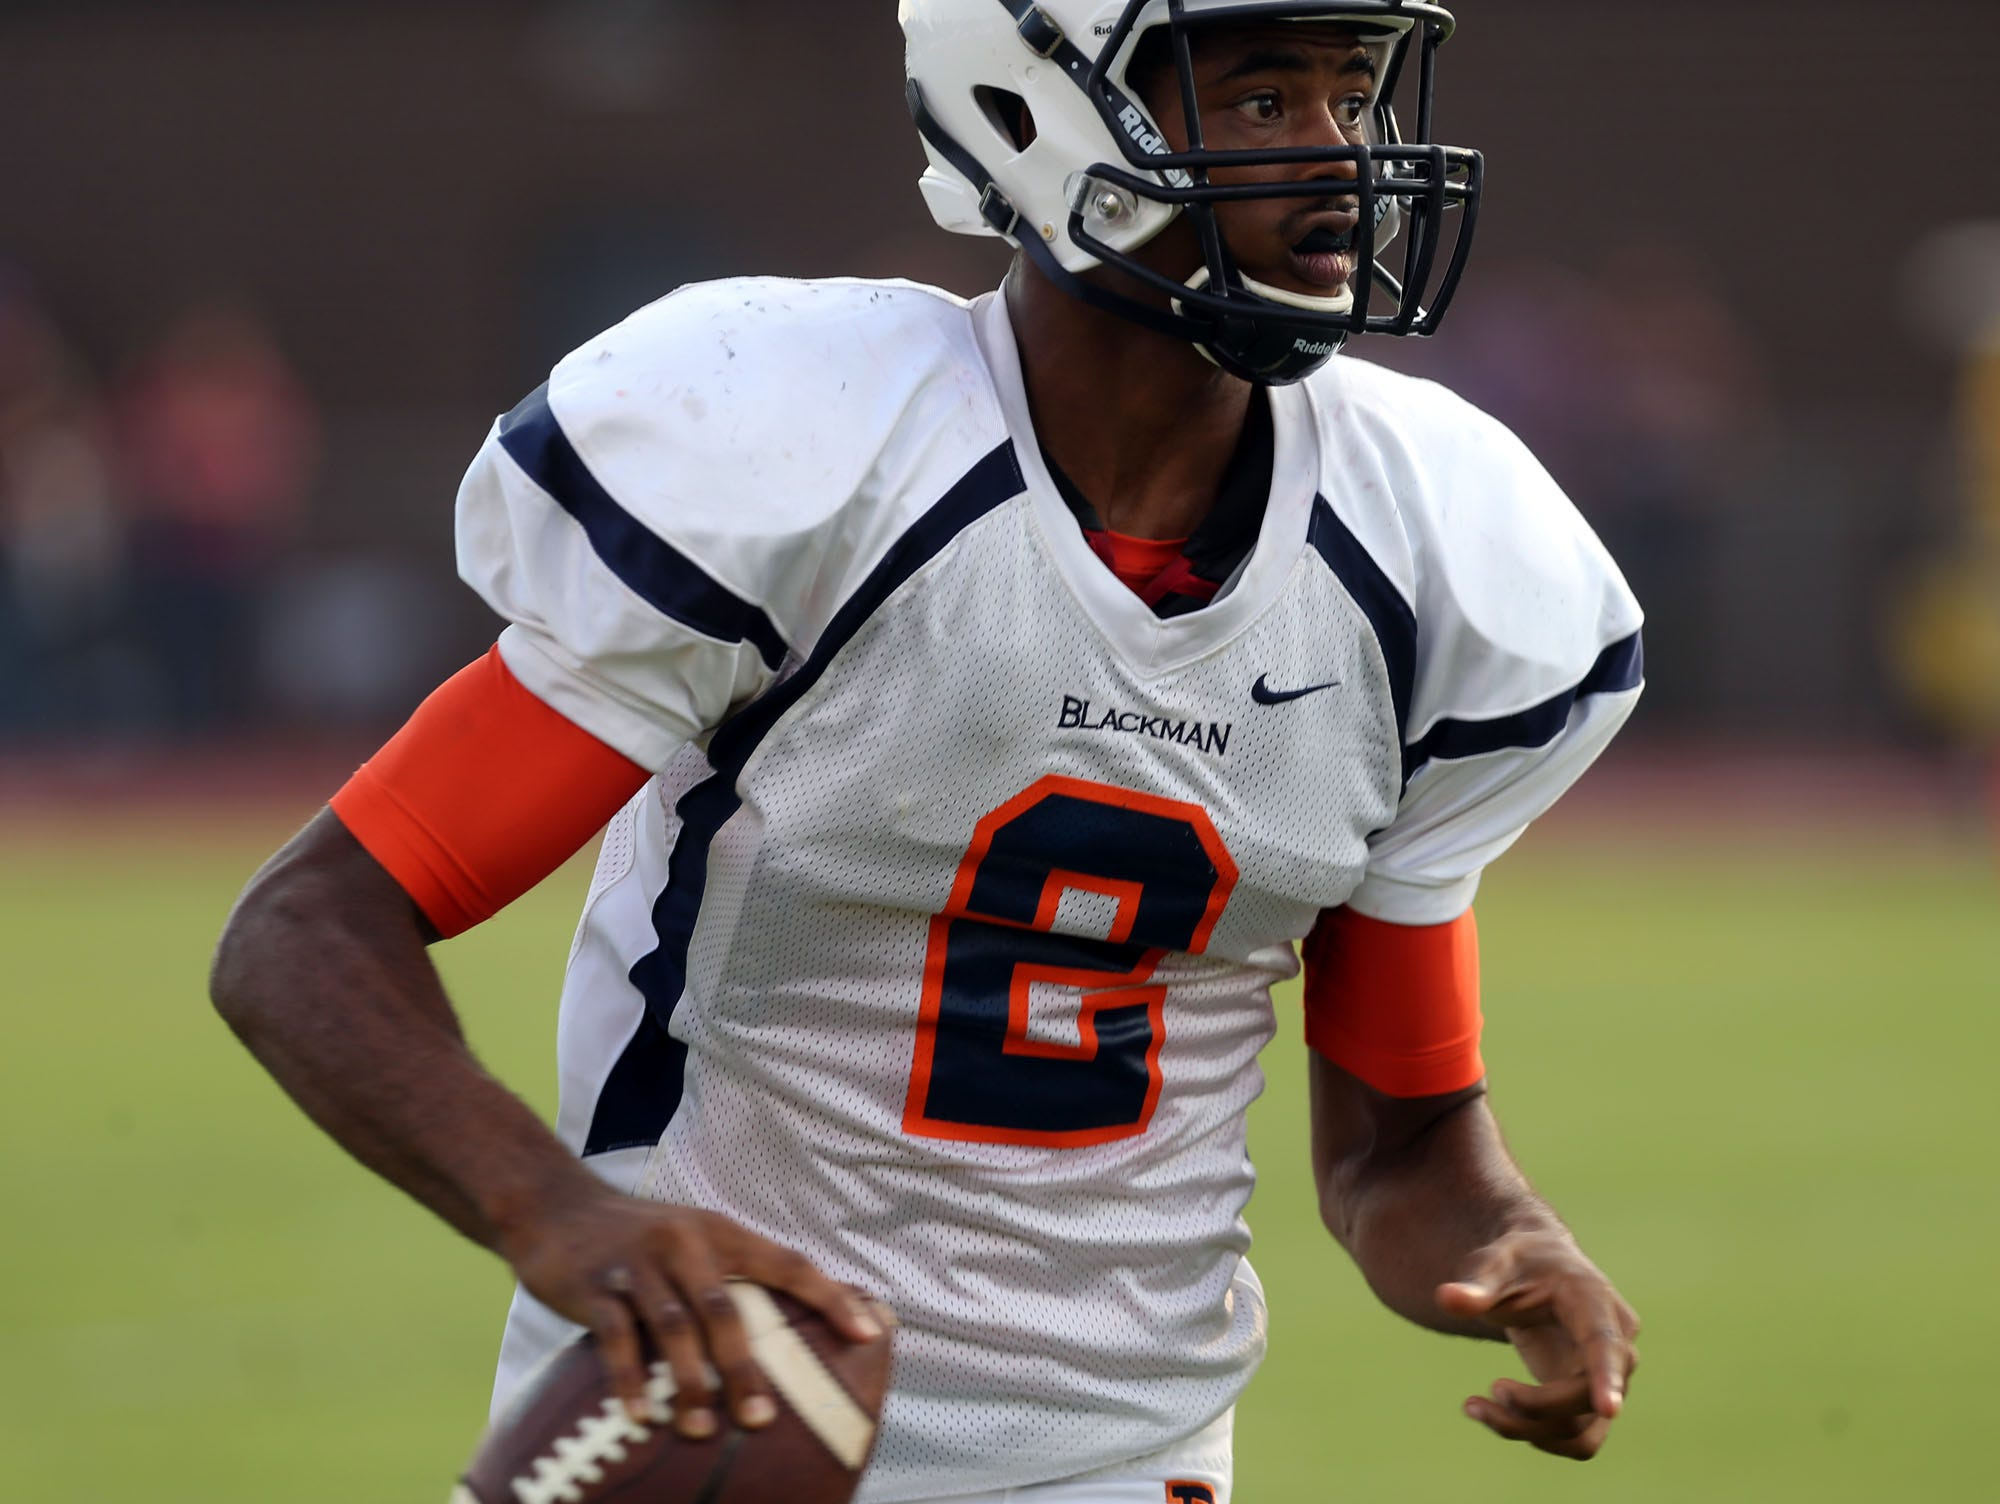 Blackman quarterback Jauan Jennings looks for a receiver during the football jamboree Friday, August 15, 2014 at Smyrna High School.